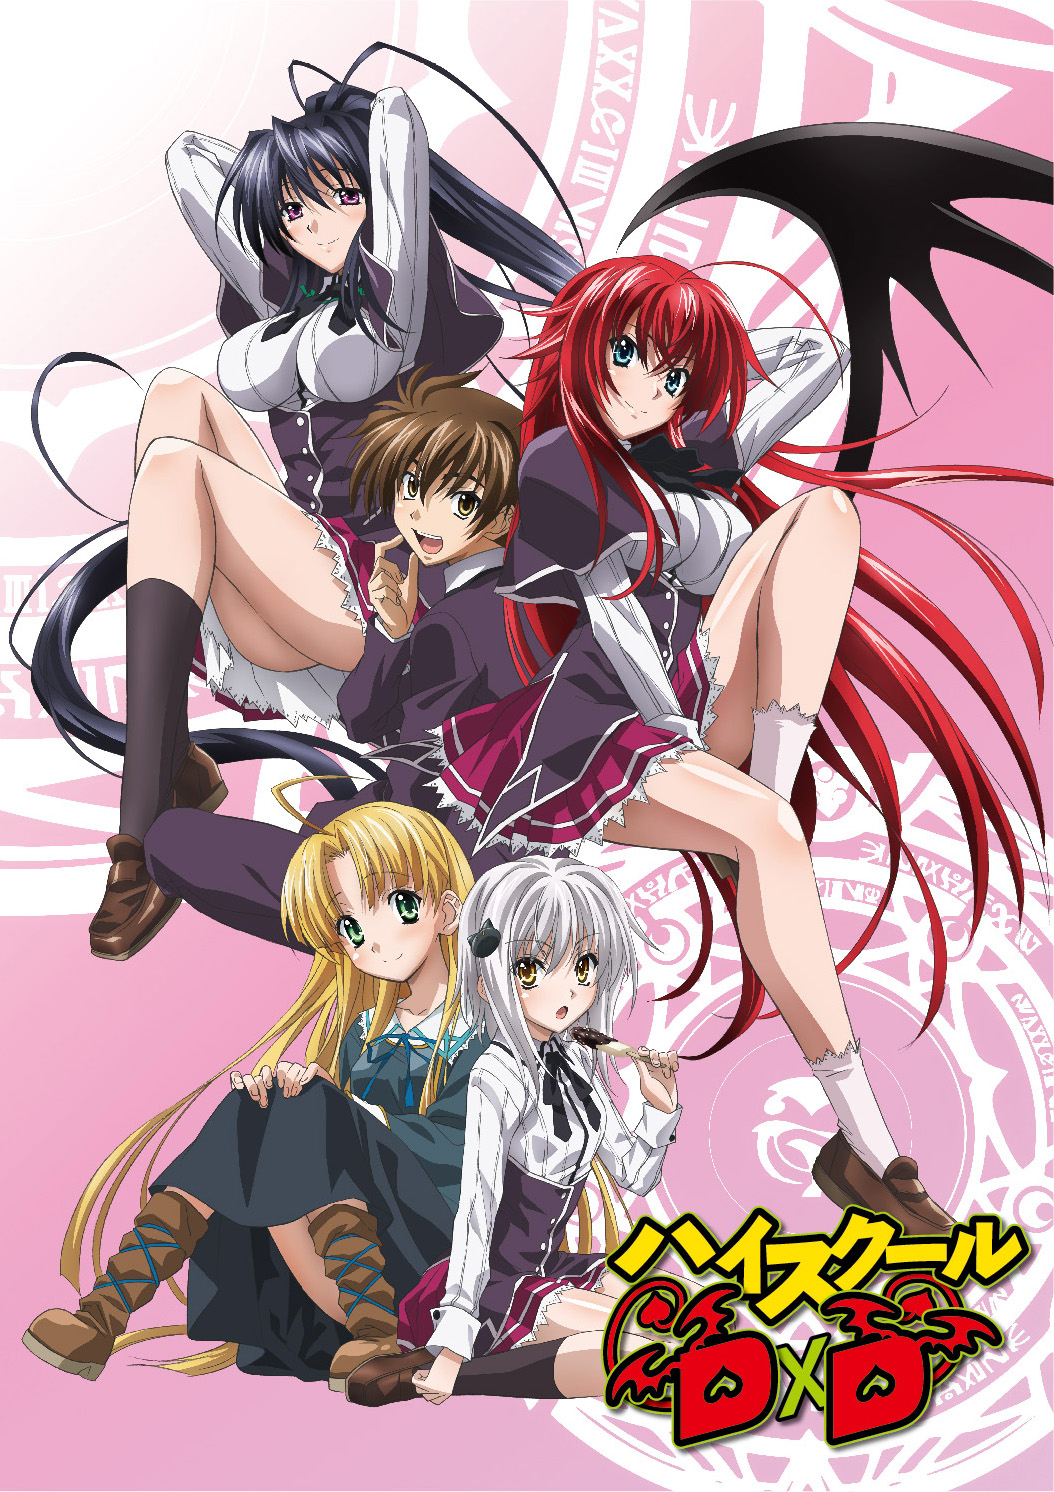 HentaiStream.com High School DxD Episode 12 Final